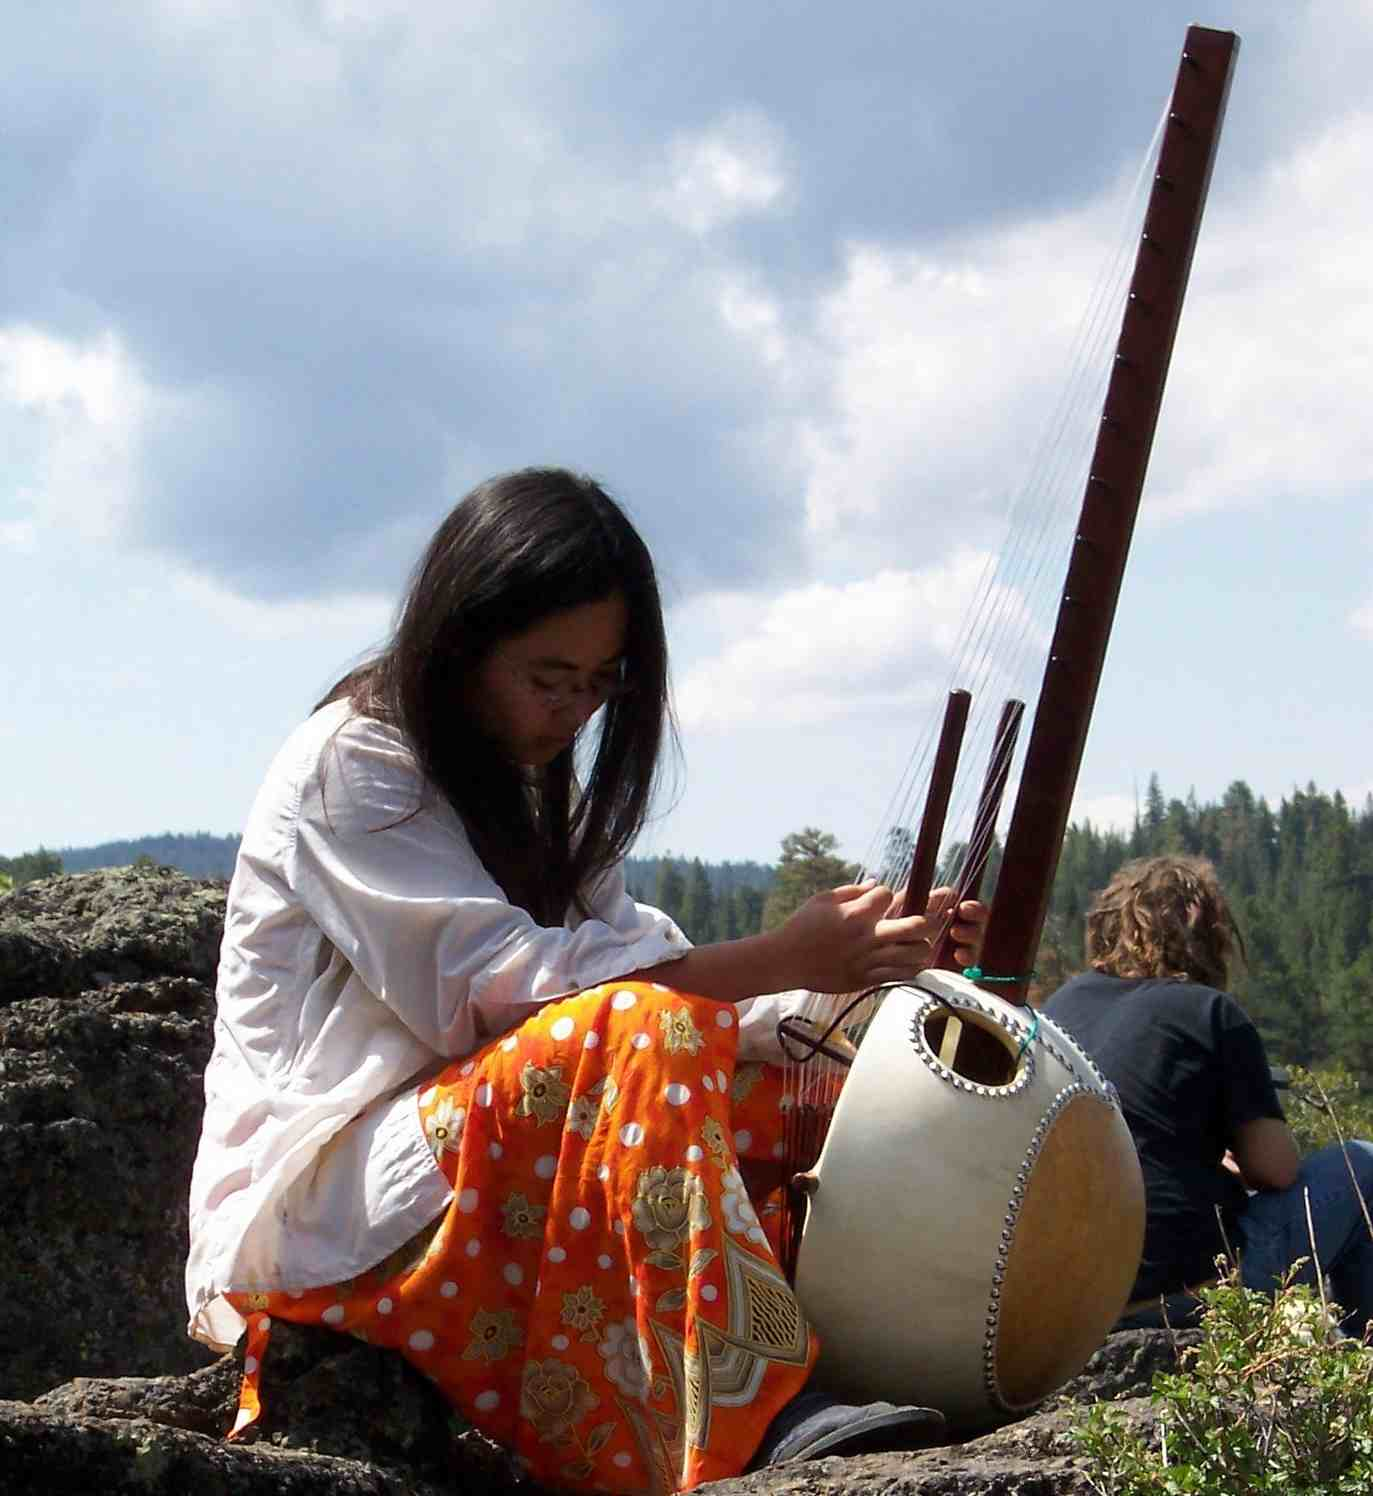 A faery woman musician prepares to play her instrument.